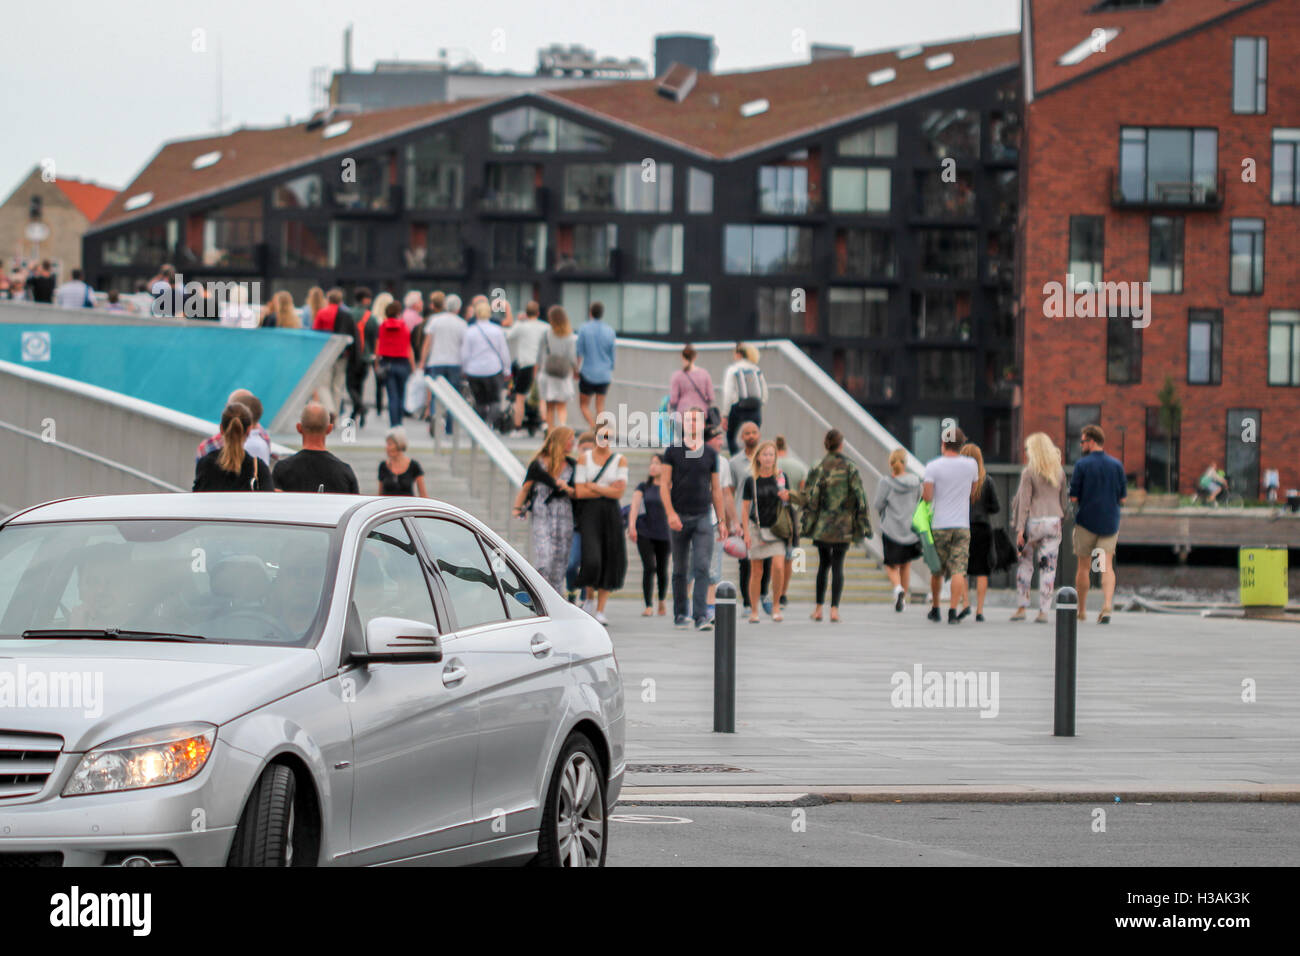 City center in Copenhagen greater area during warm spring day Stock Photo